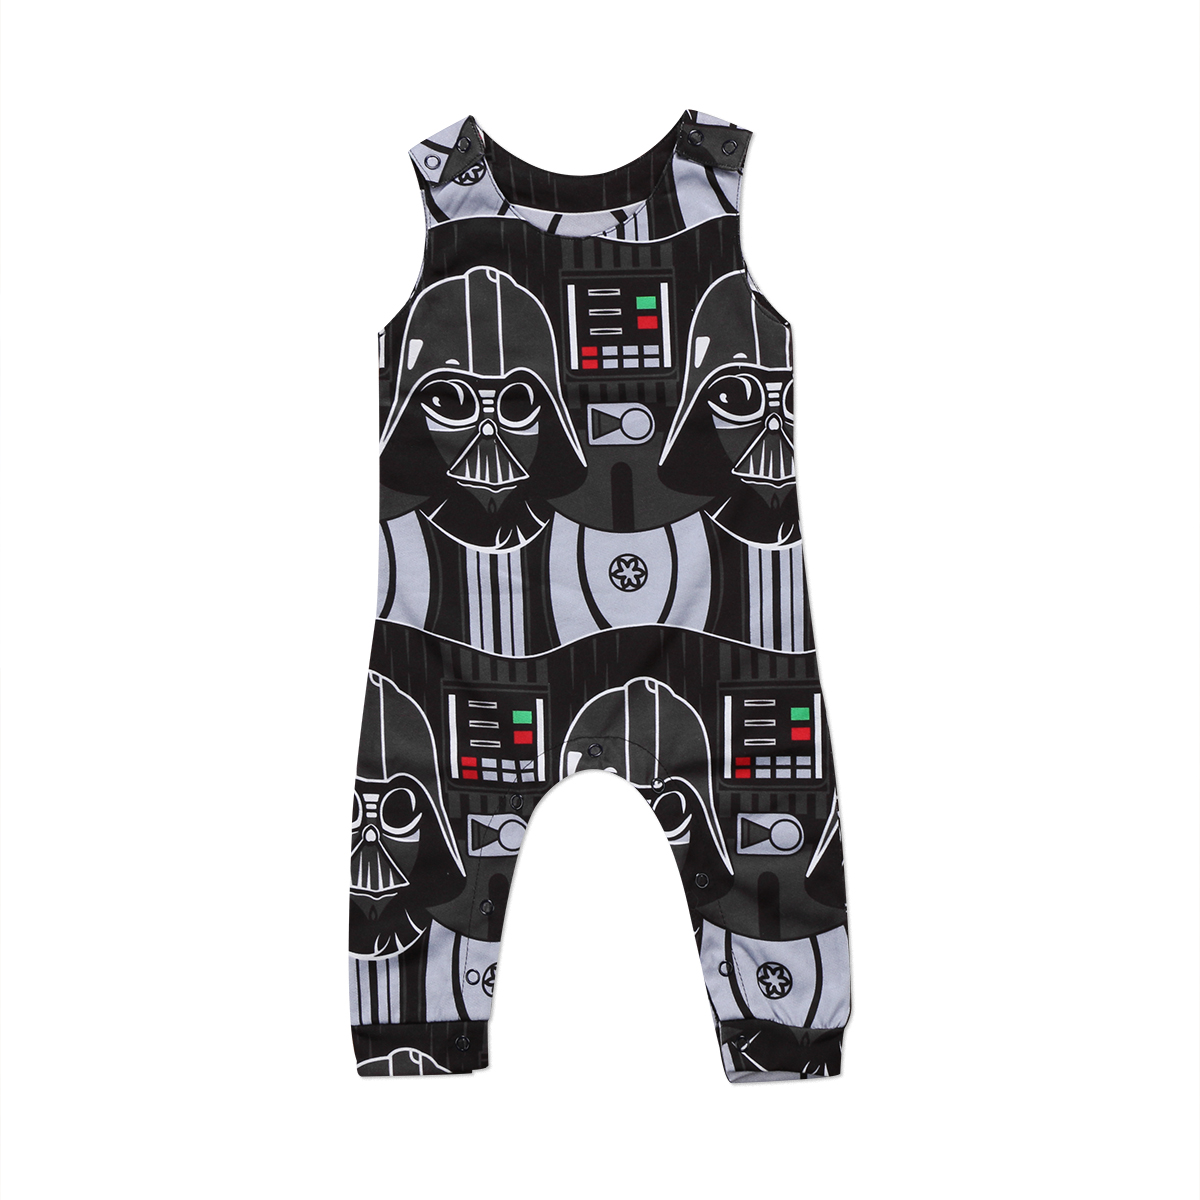 Pudcoco 2017 Cute Toddler Kids Baby Boys Star Wars Romper Sleeveles Jumpsuit Personality Clothes Outfits Novelty 0-3Y star wars boys black